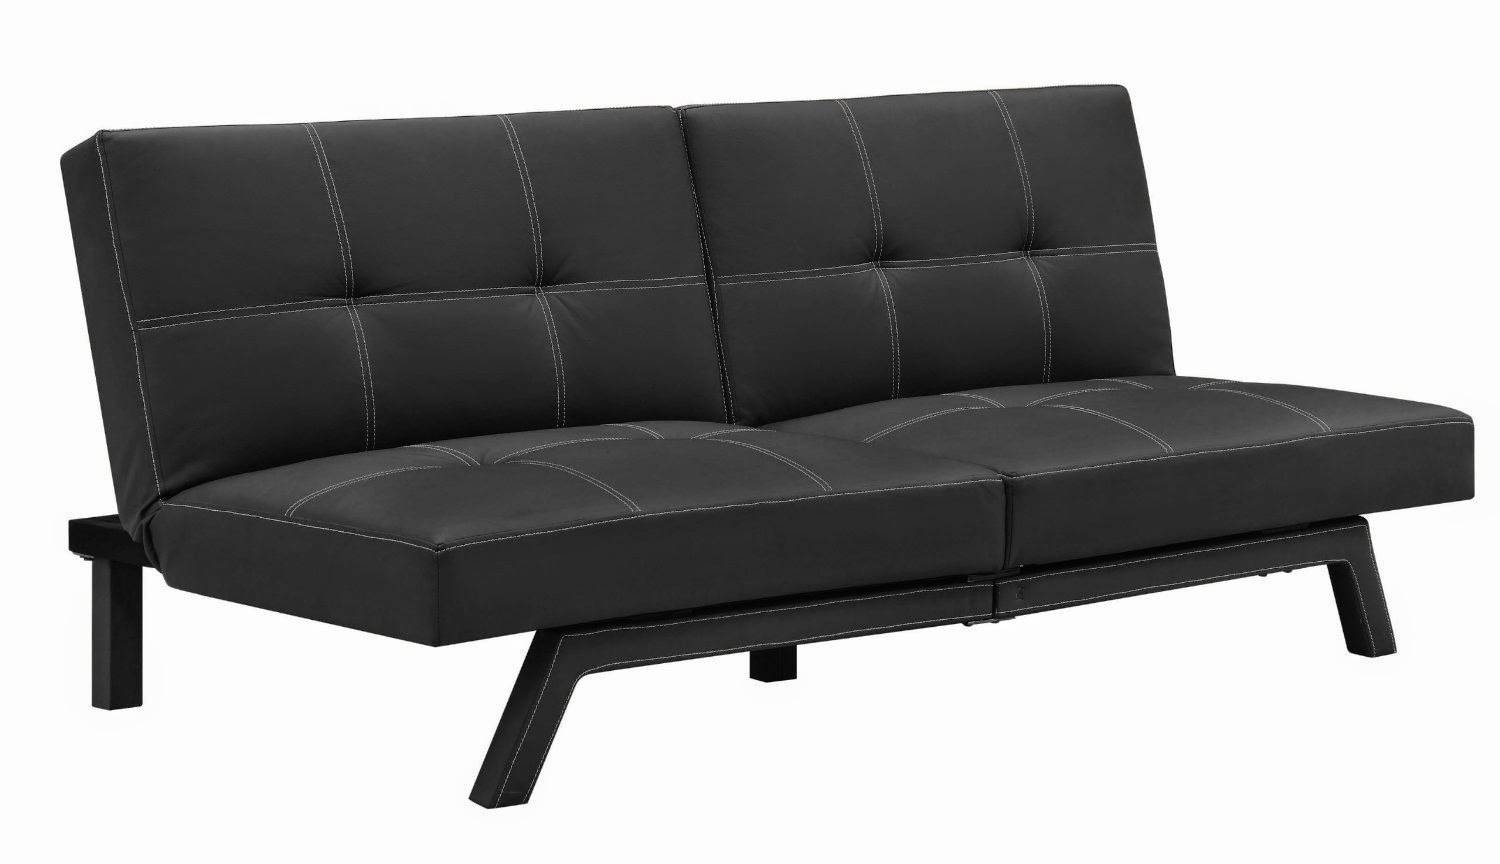 Top Cheap Faux Leather Sofa With Leather Faux Leather Match Sofa for Cheap Black Sofas (Image 30 of 30)